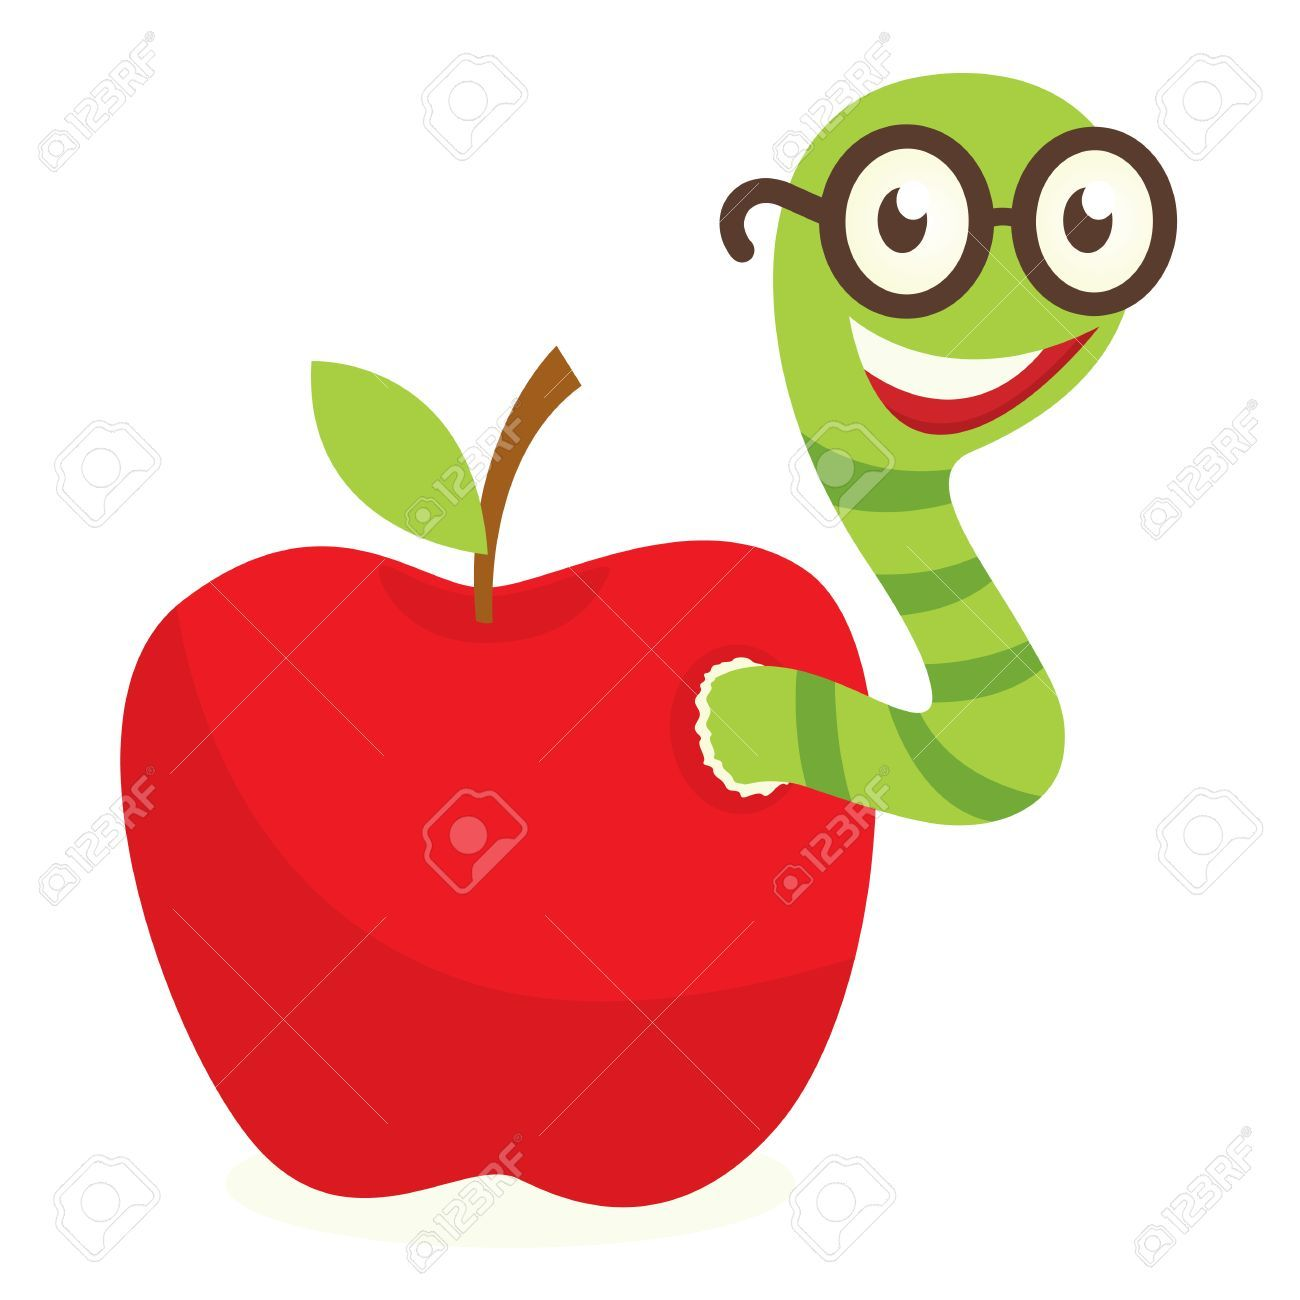 Apple with worm clipart 6 » Clipart Portal.